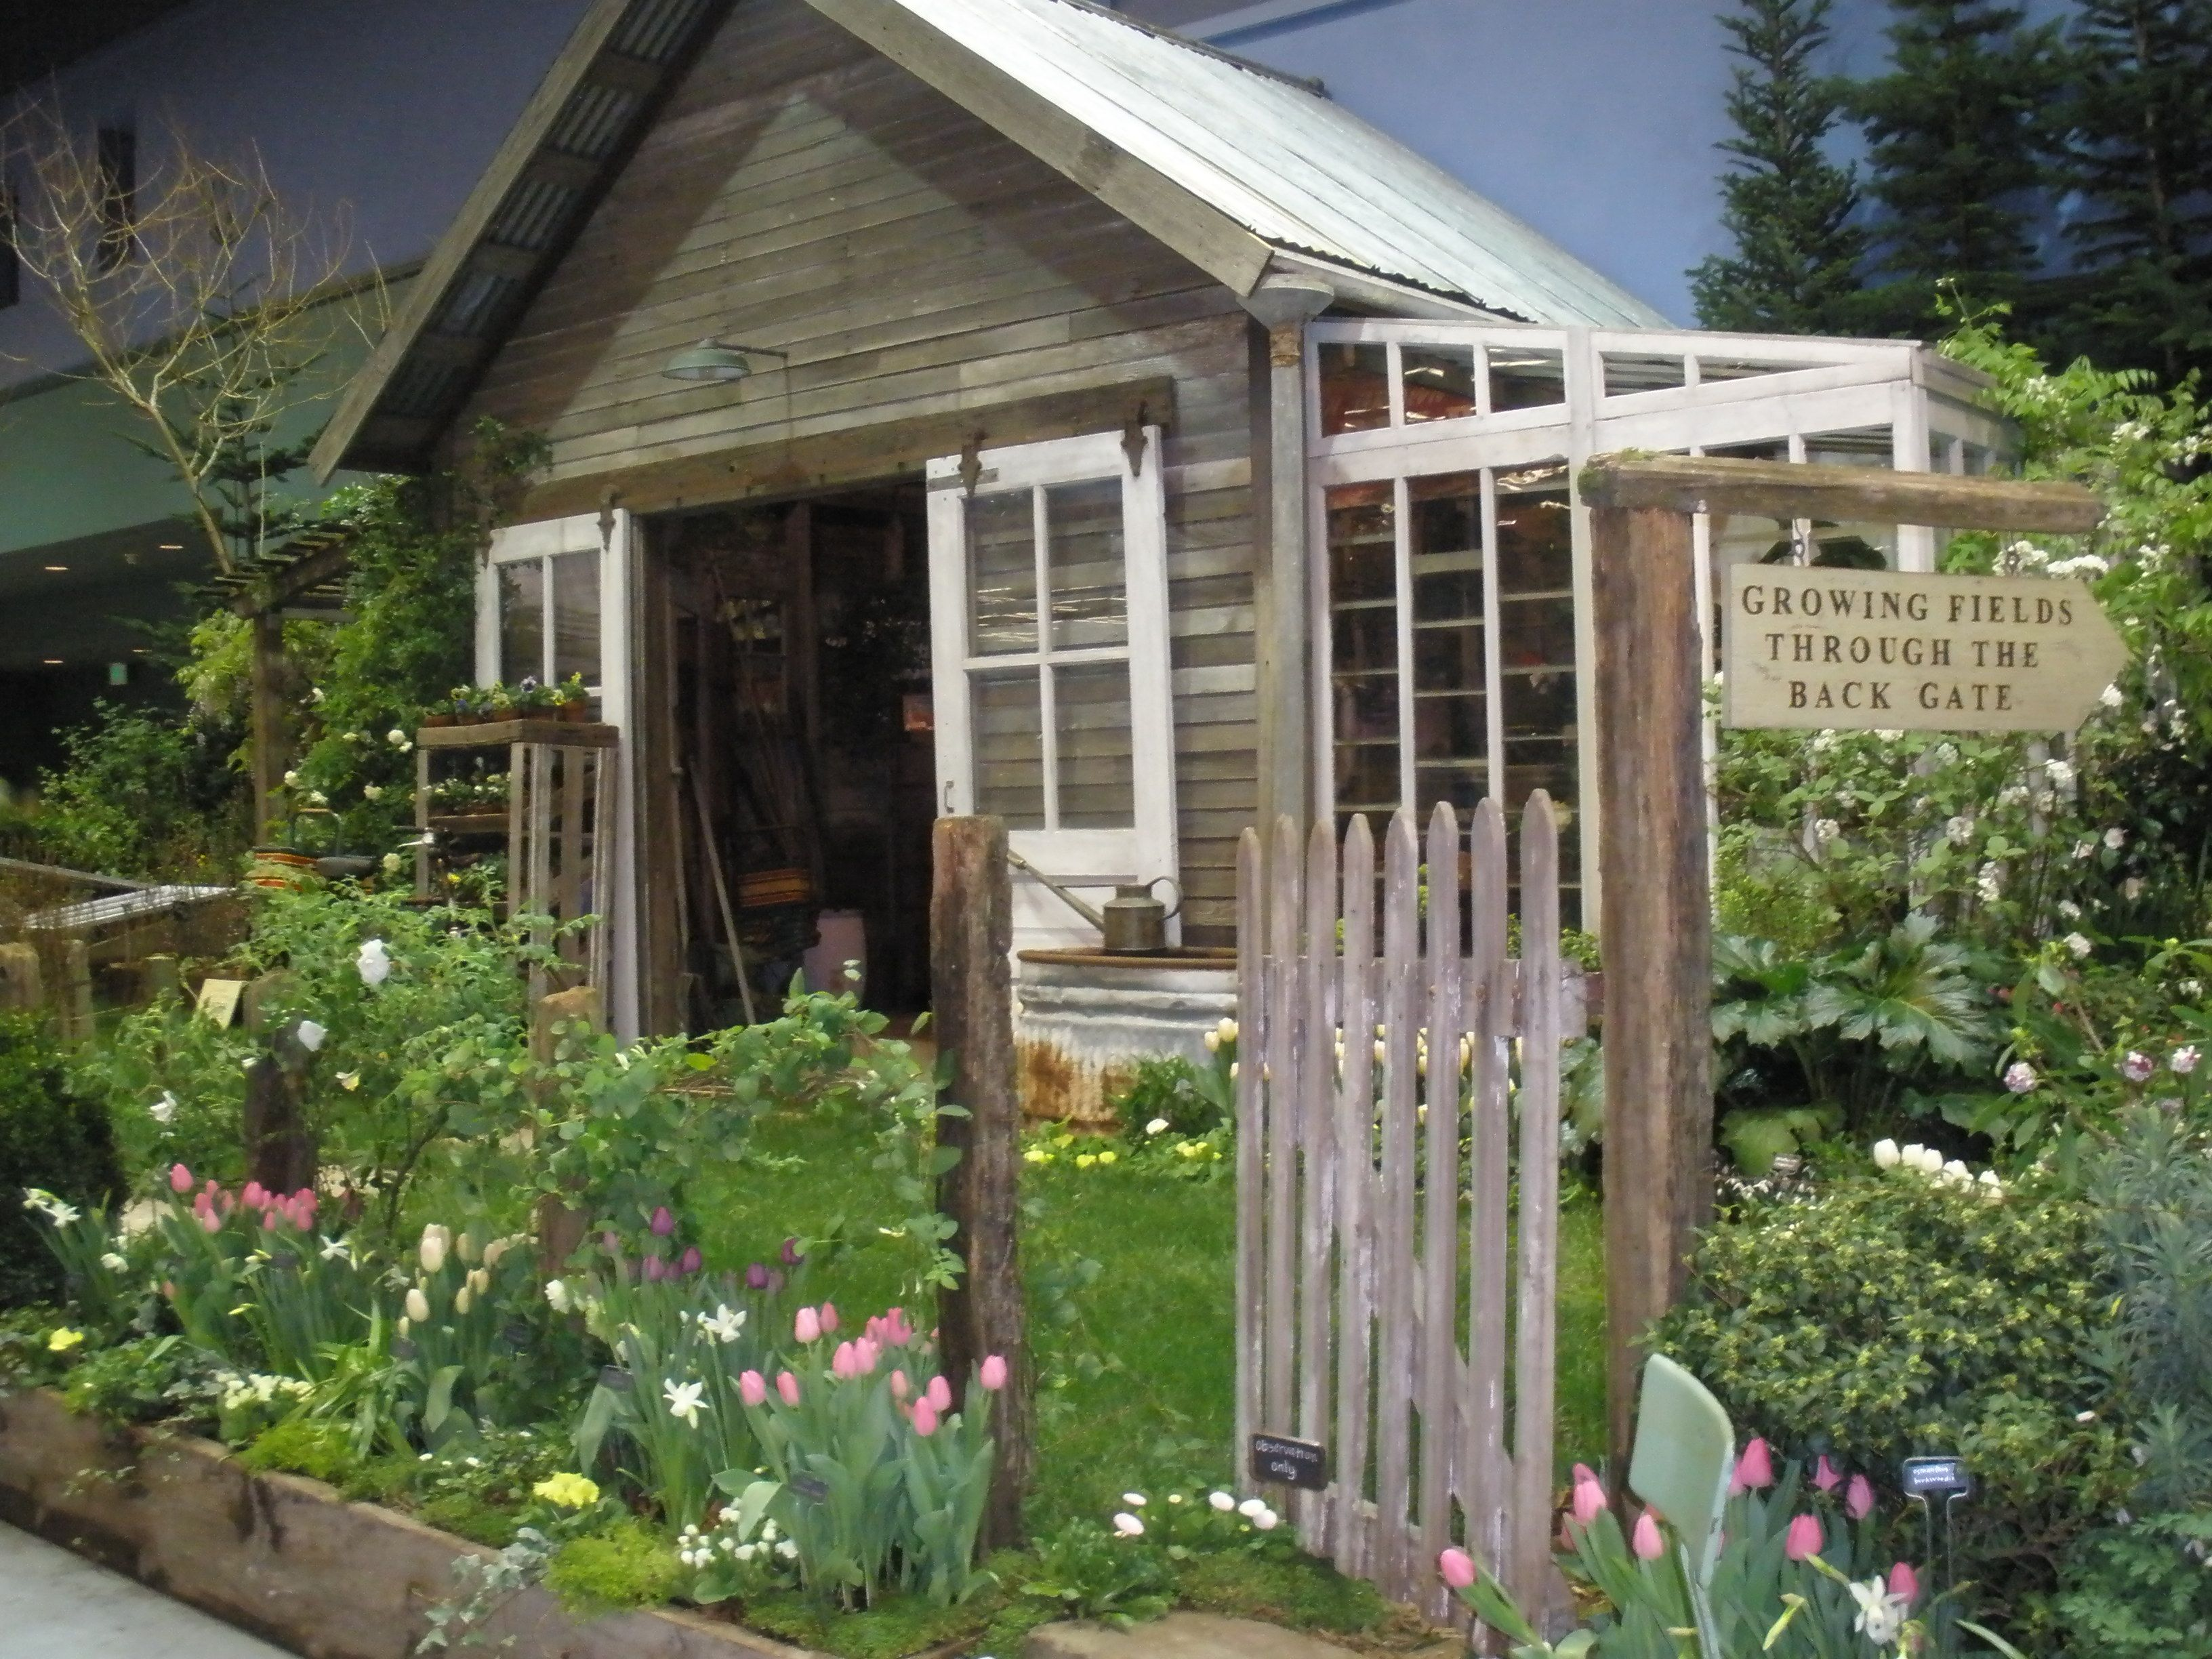 Rustic Garden Ideas rustic garden ideas gardening junky duluth garden shop where Image Detail For Rustic Garden Shed